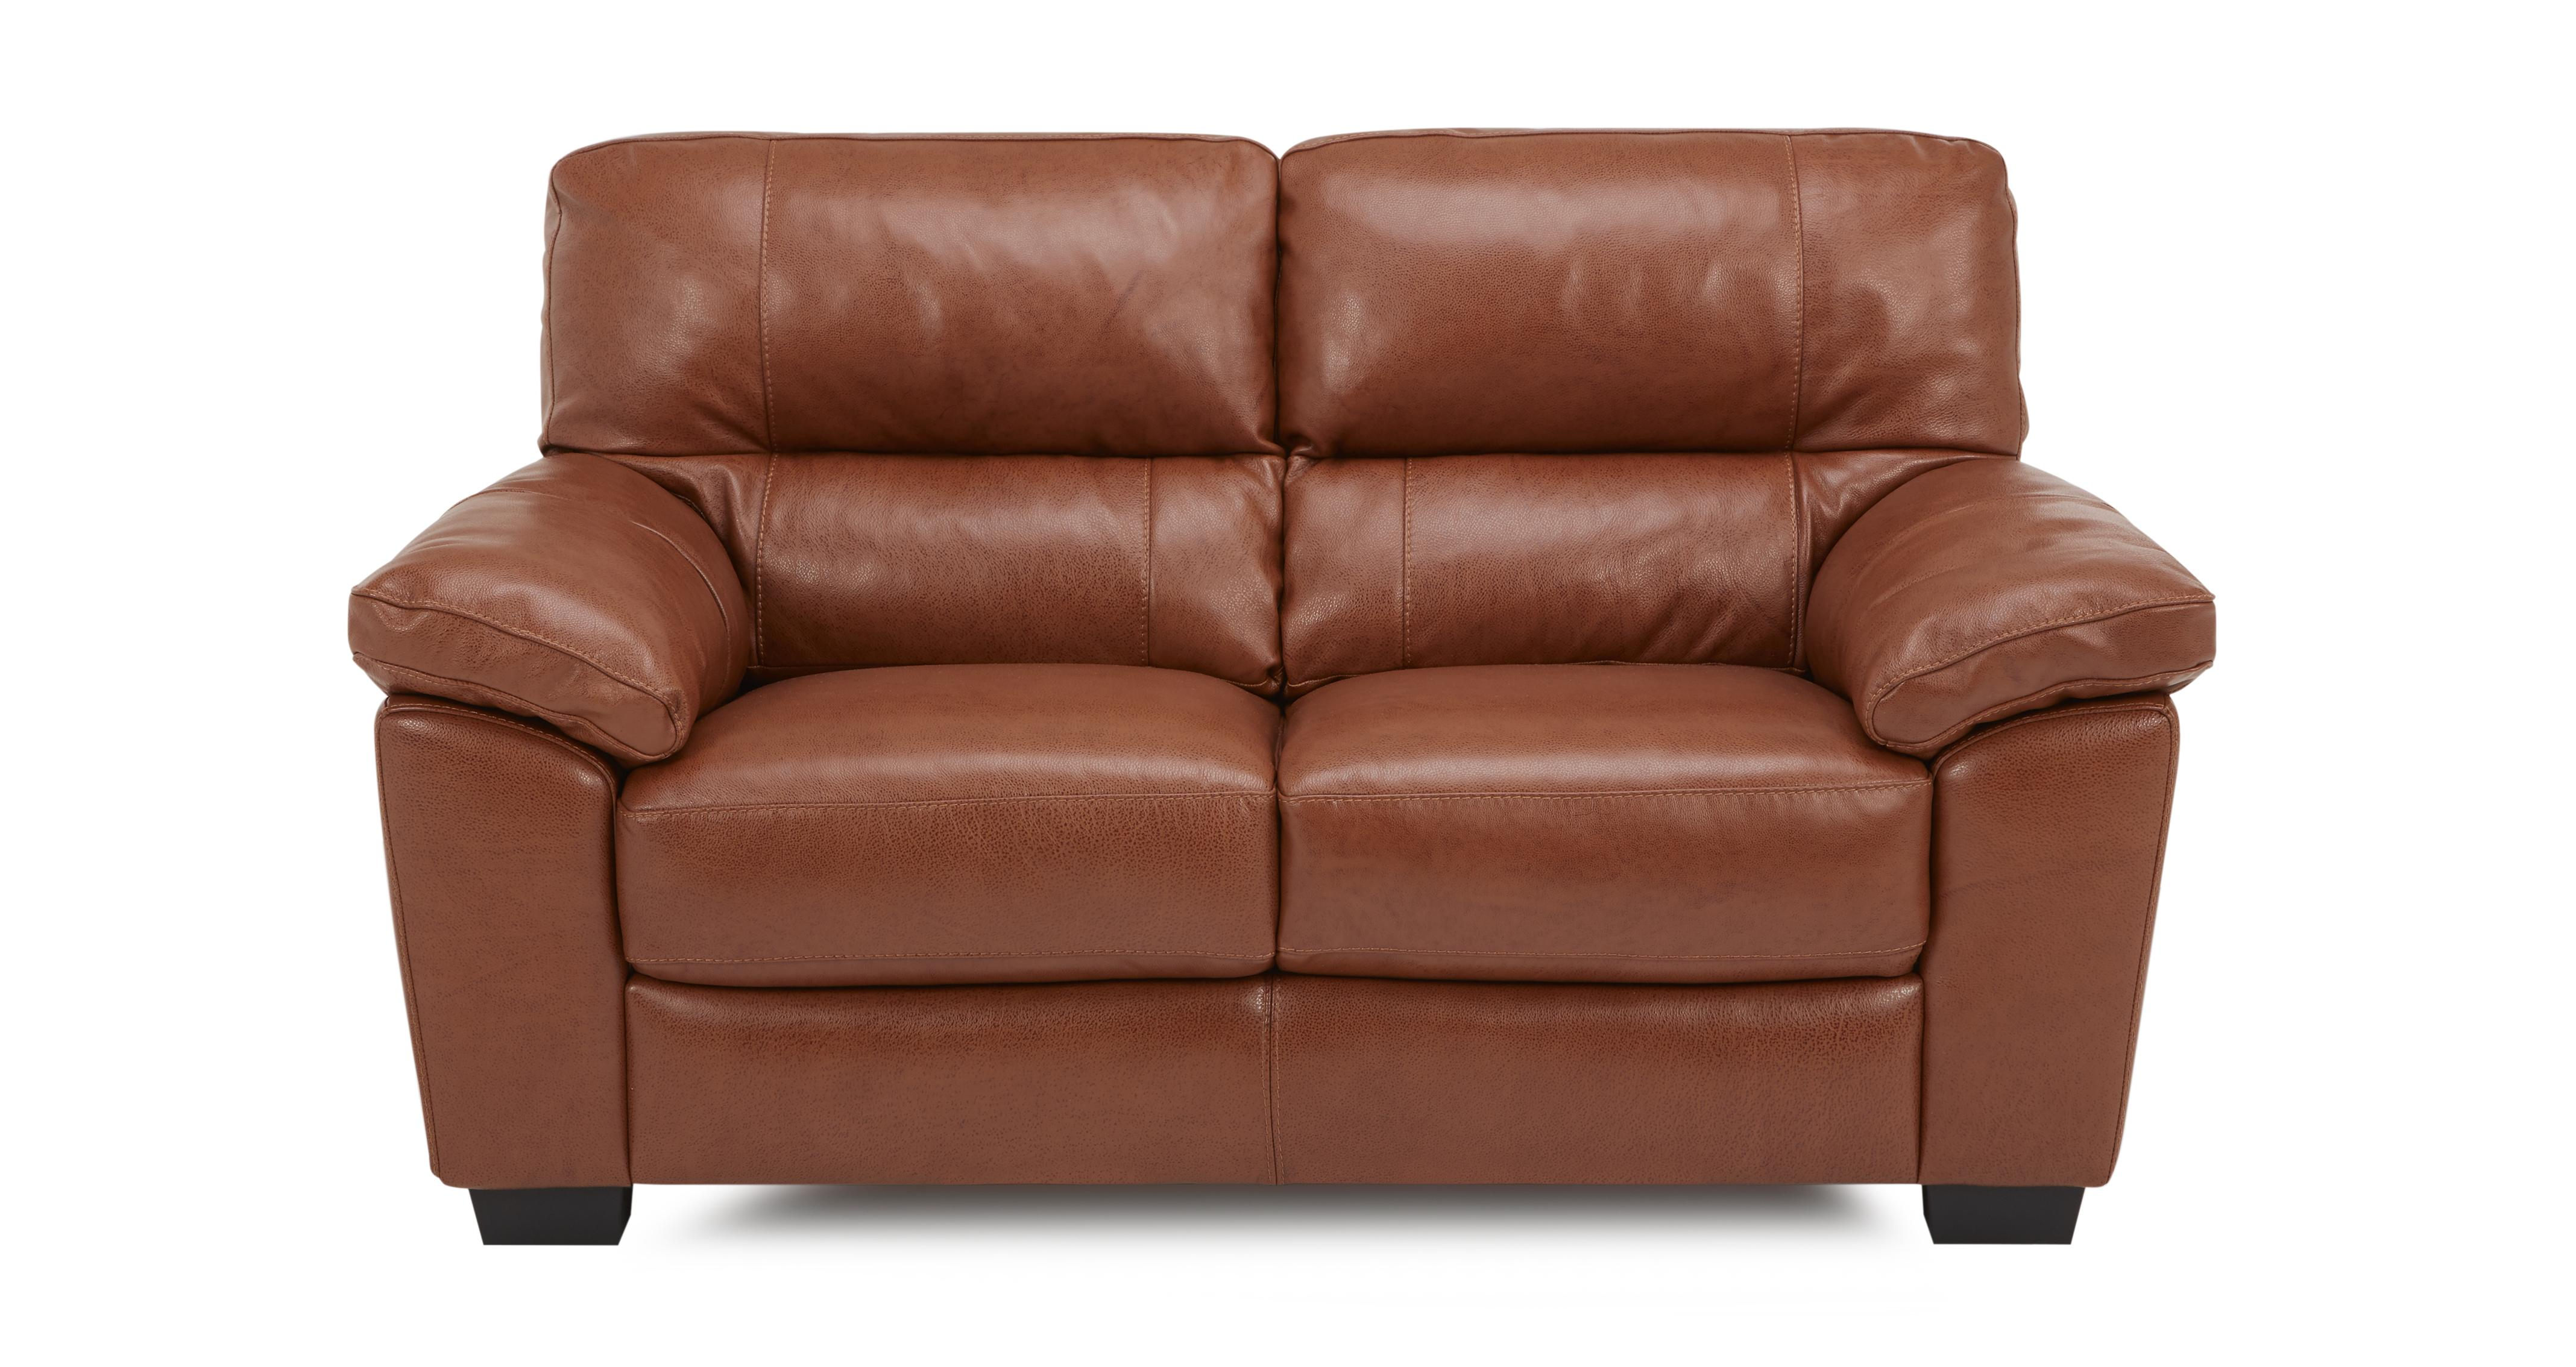 Dalmore Leather and Leather Look 2 Seater Sofa Brazil with  : dalmore2hbrazilwithleatherlookfabricbrandyview1 from www.dfs.co.uk size 4273 x 2268 jpeg 674kB